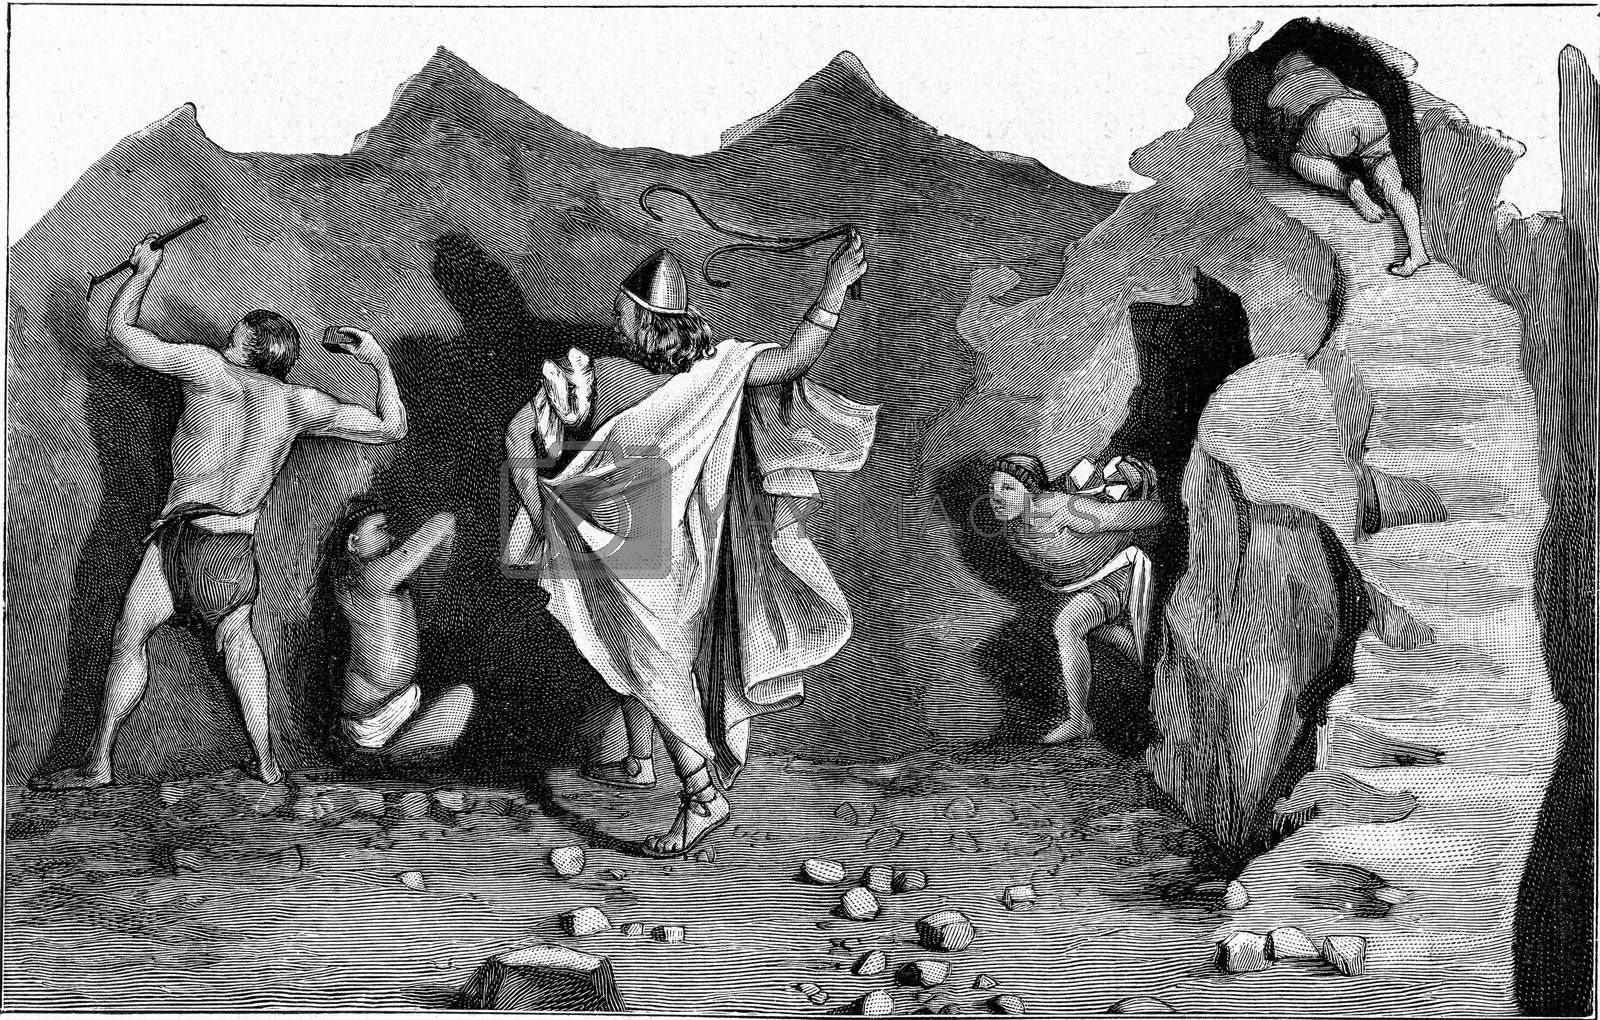 The work of slaves in a Phoenician copper mine, vintage engraved illustration. From the Universe and Humanity, 1910.